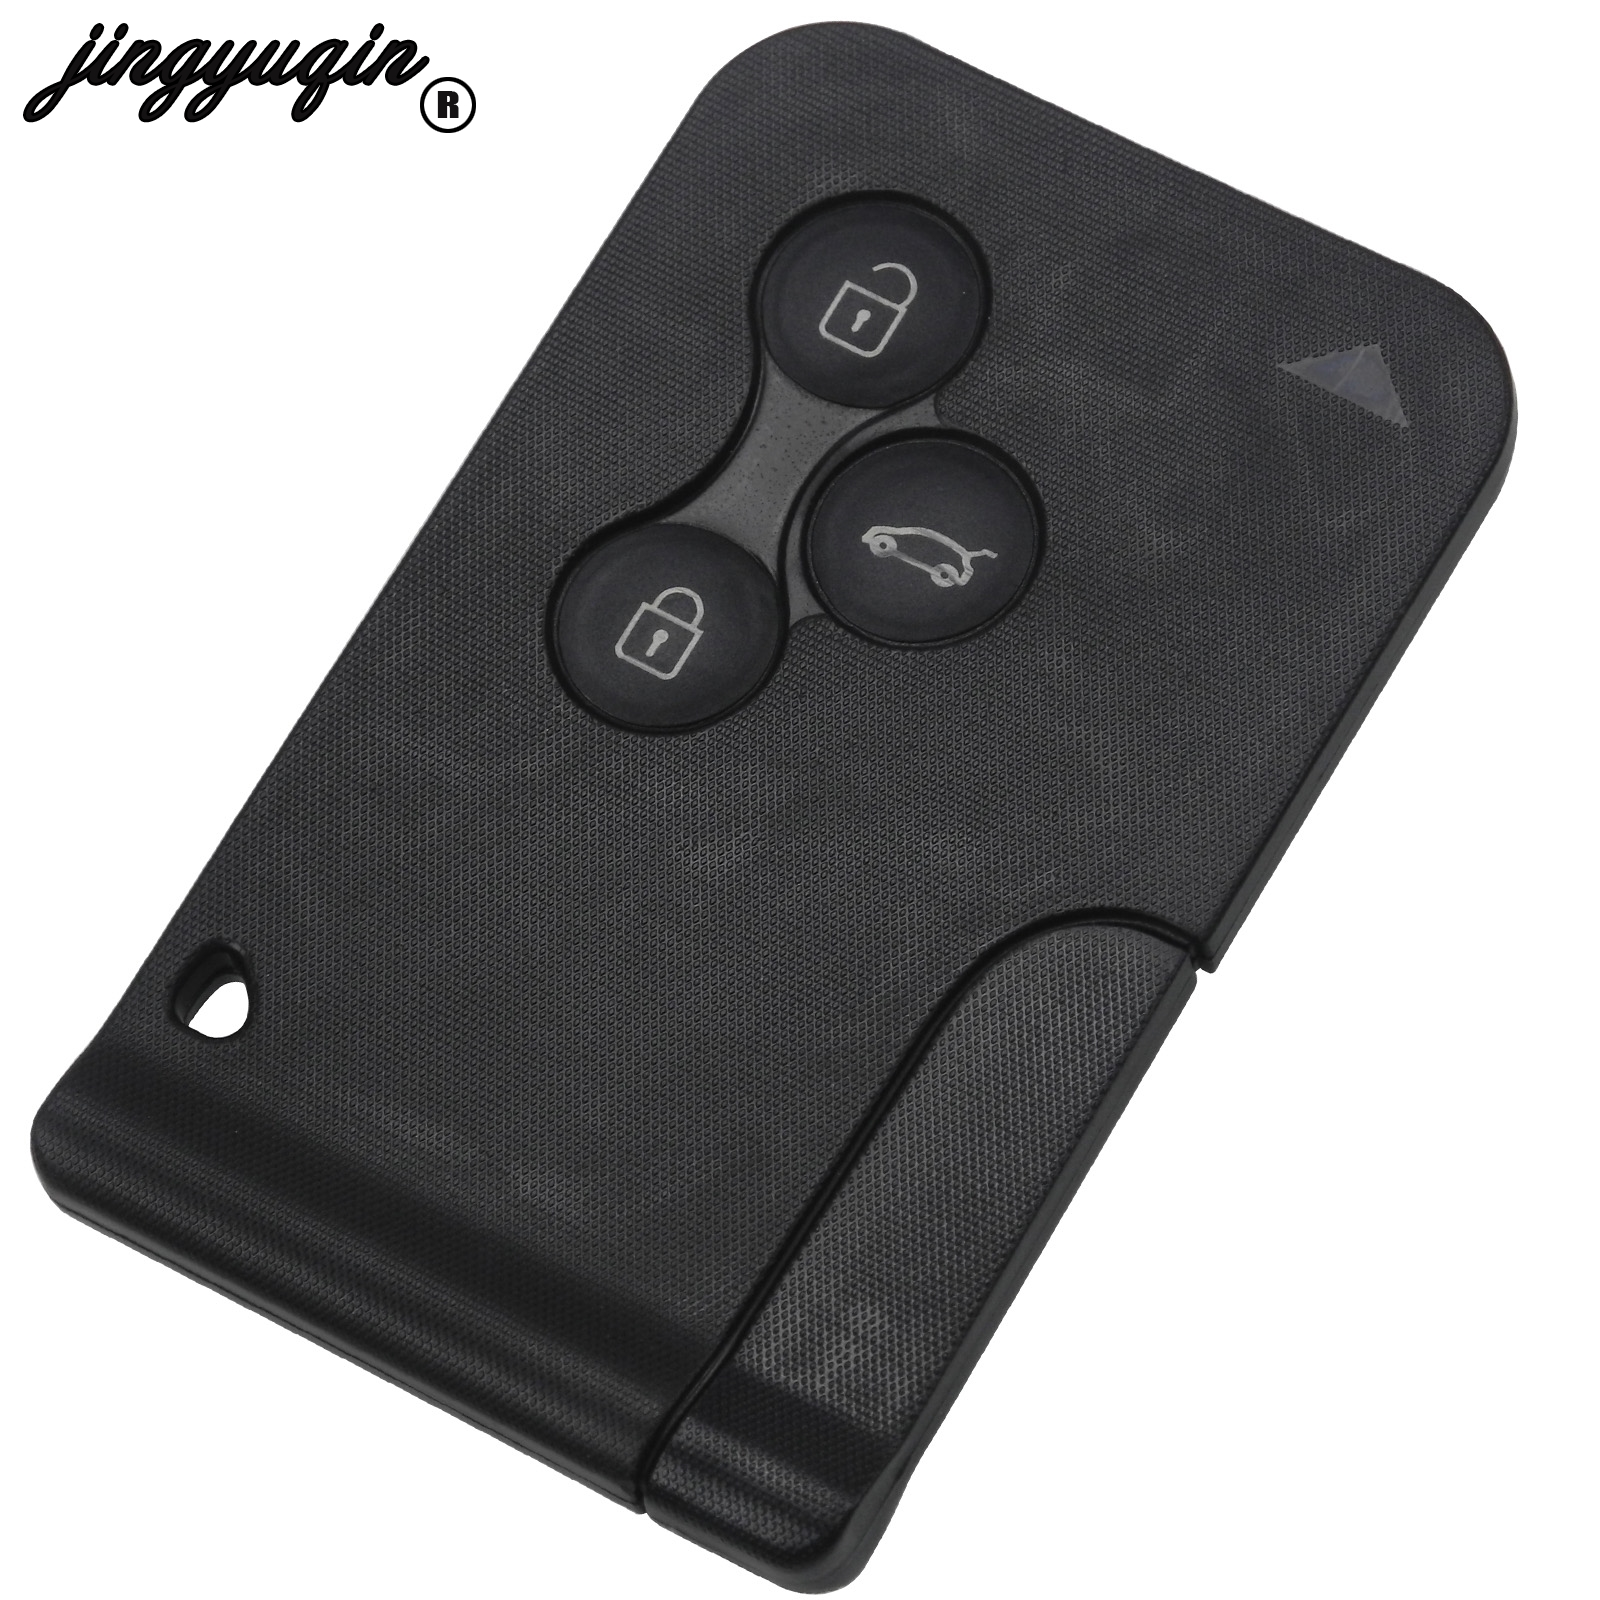 jingyuqin 3 Buttons Remote Fob Car Key Case Shell Replace Cover For Renault Clio Megane Grand Scenic 2 3 Koleos with small key(China)